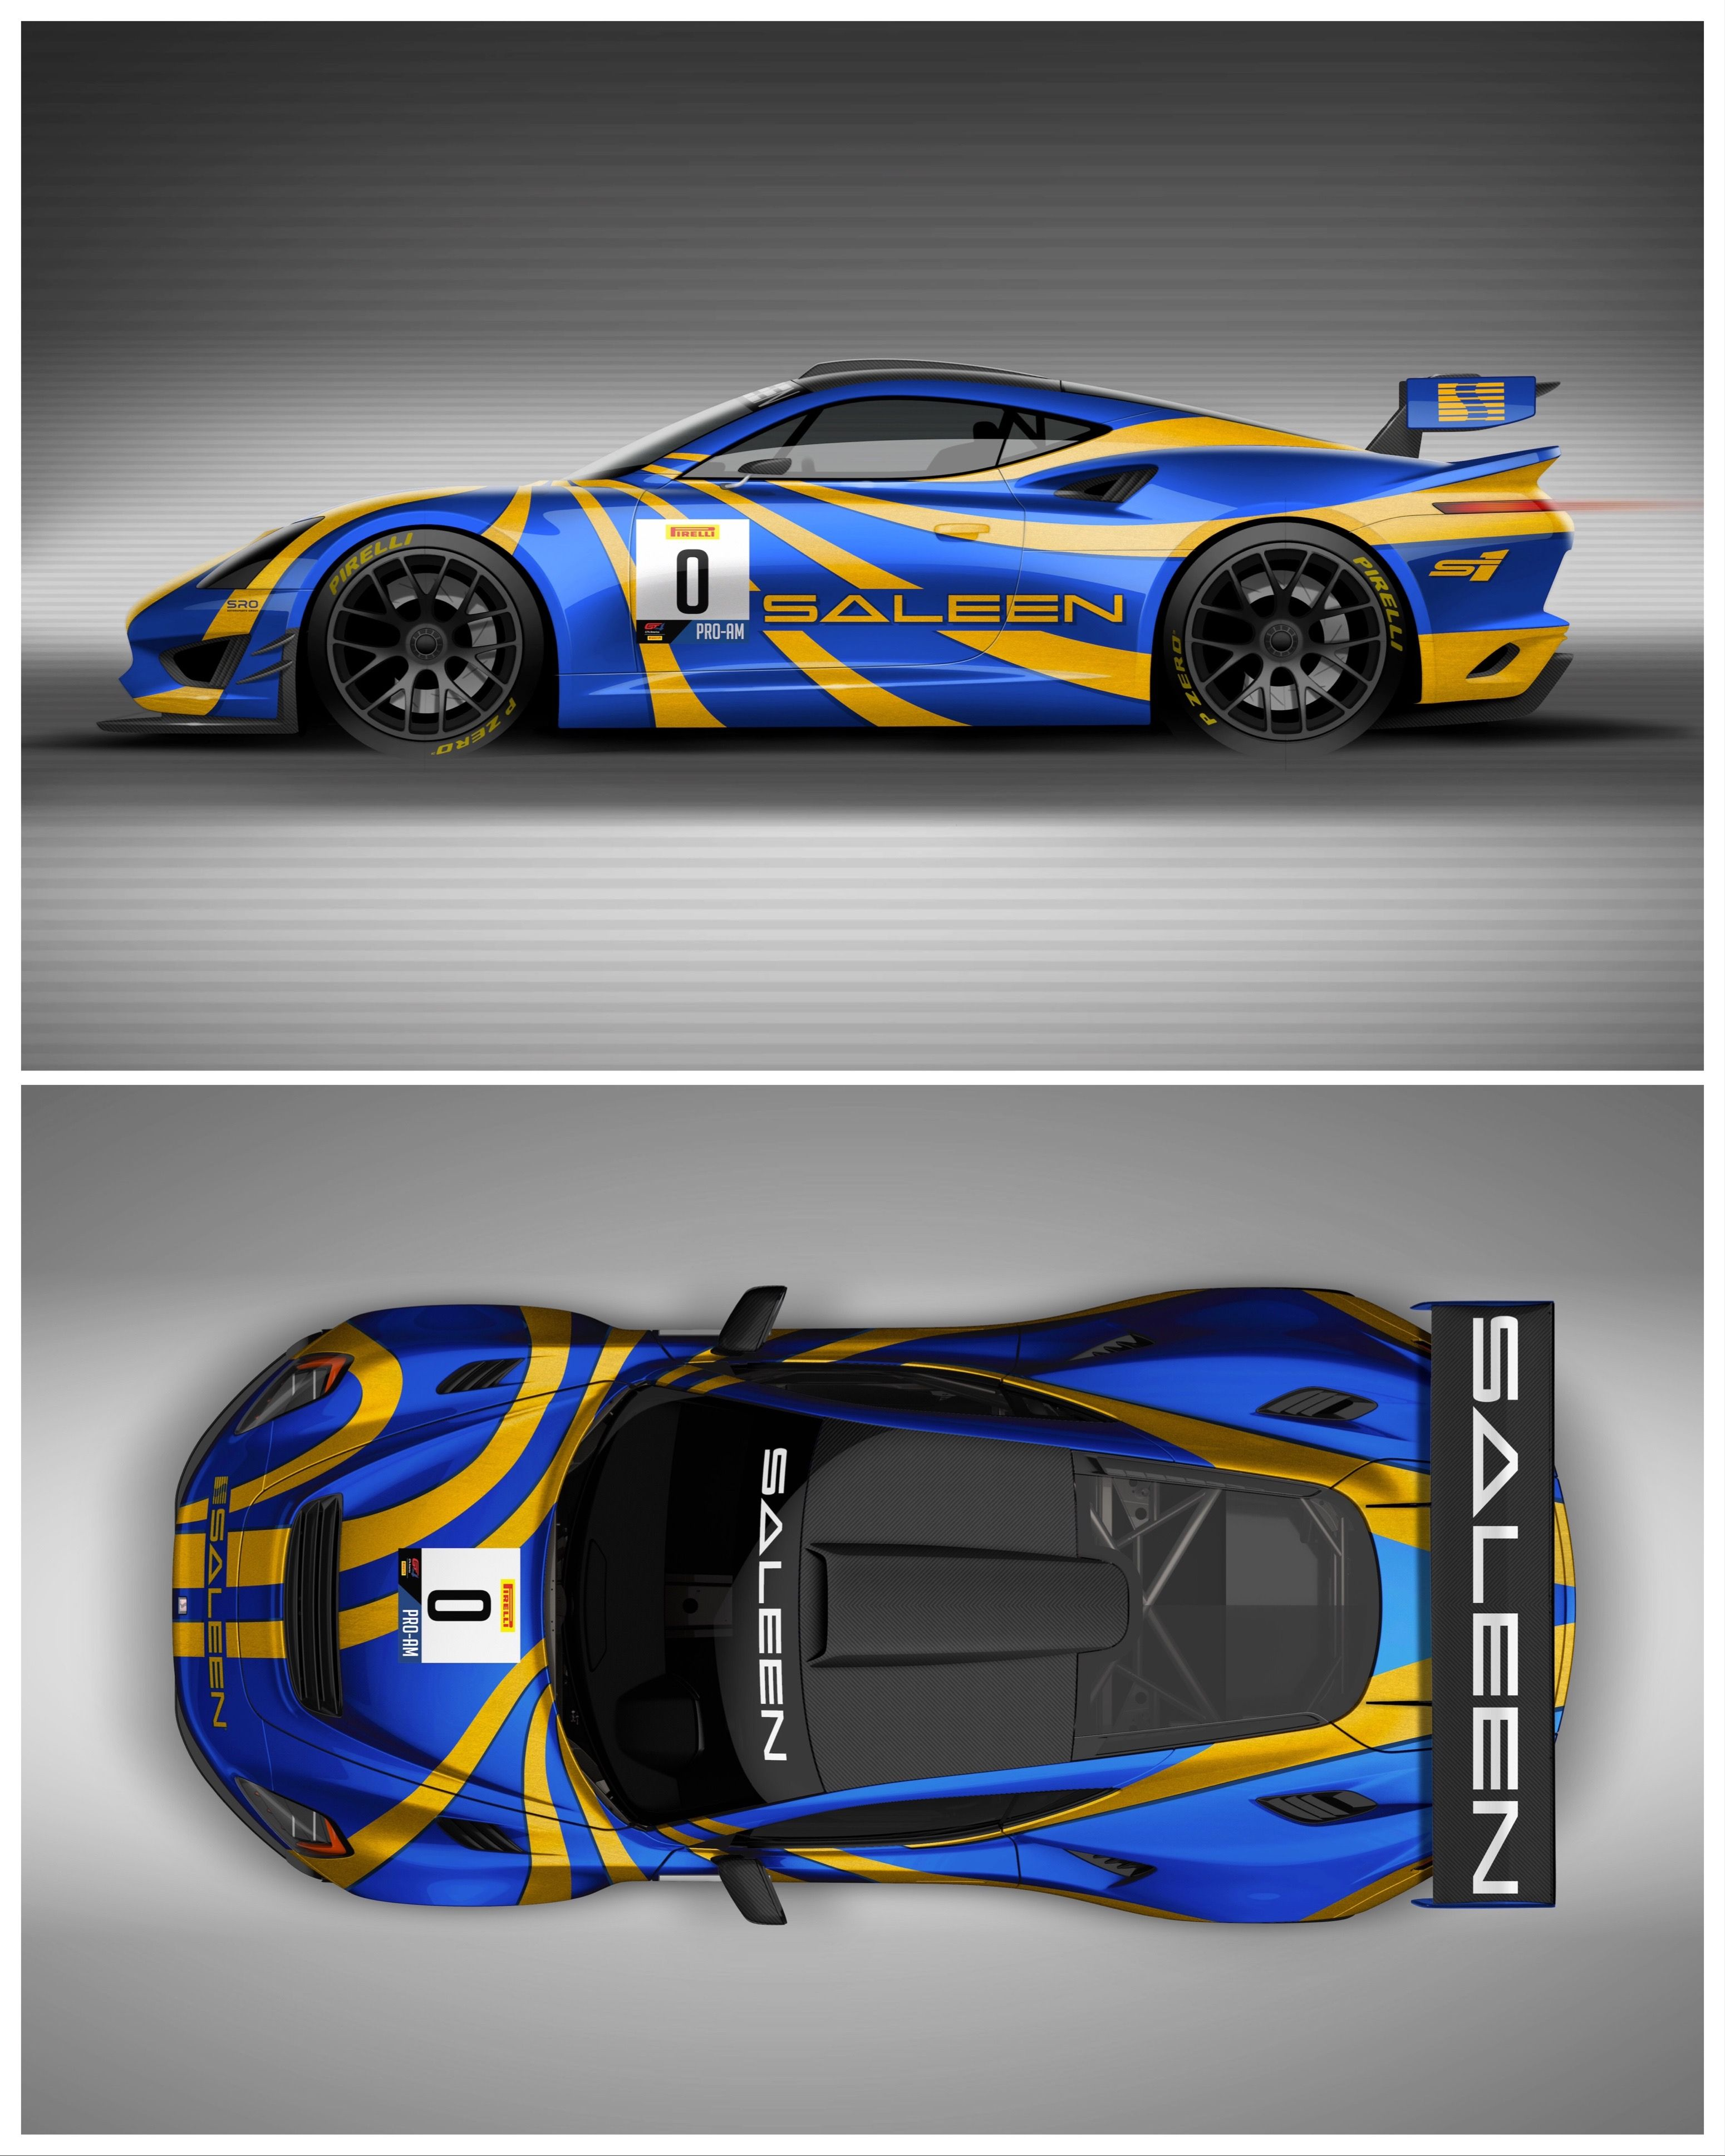 Lola T70 Independent Race Car Which Could Beat Famous Names Snaplap Race Cars Classic Racing Cars Gt Cars